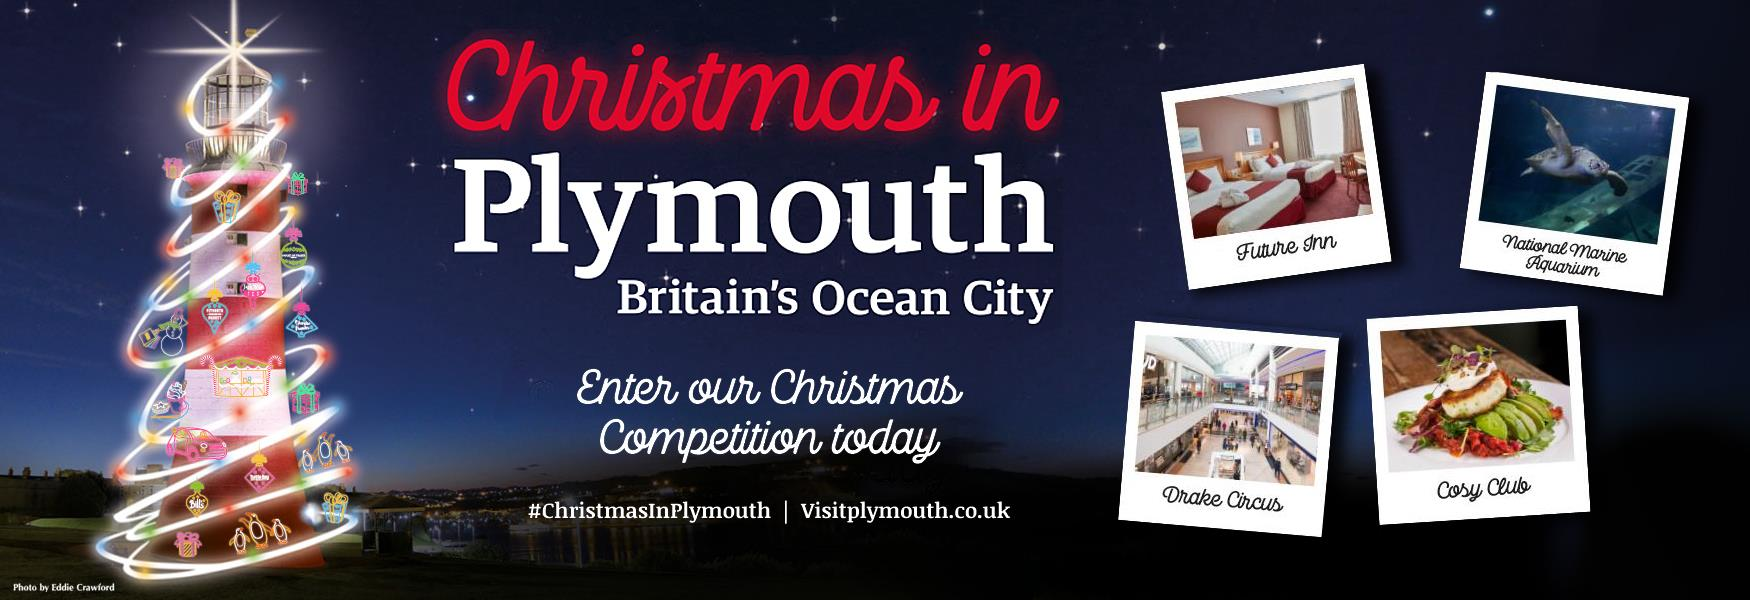 Christmas in Plymouth Competition 2019